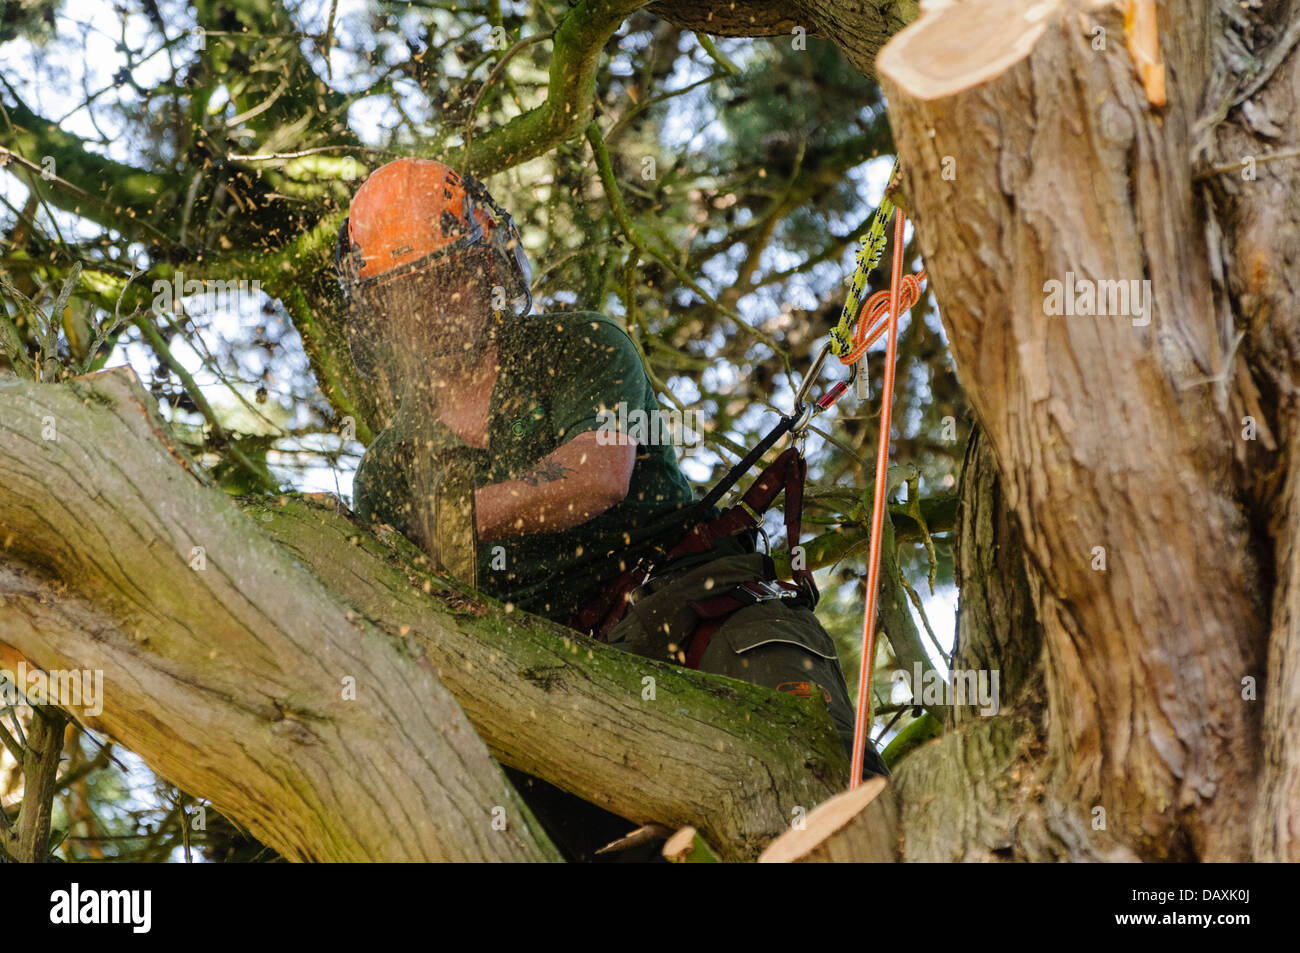 A tree surgeon uses a chainsaw to cut branches from a tree Stock Photo